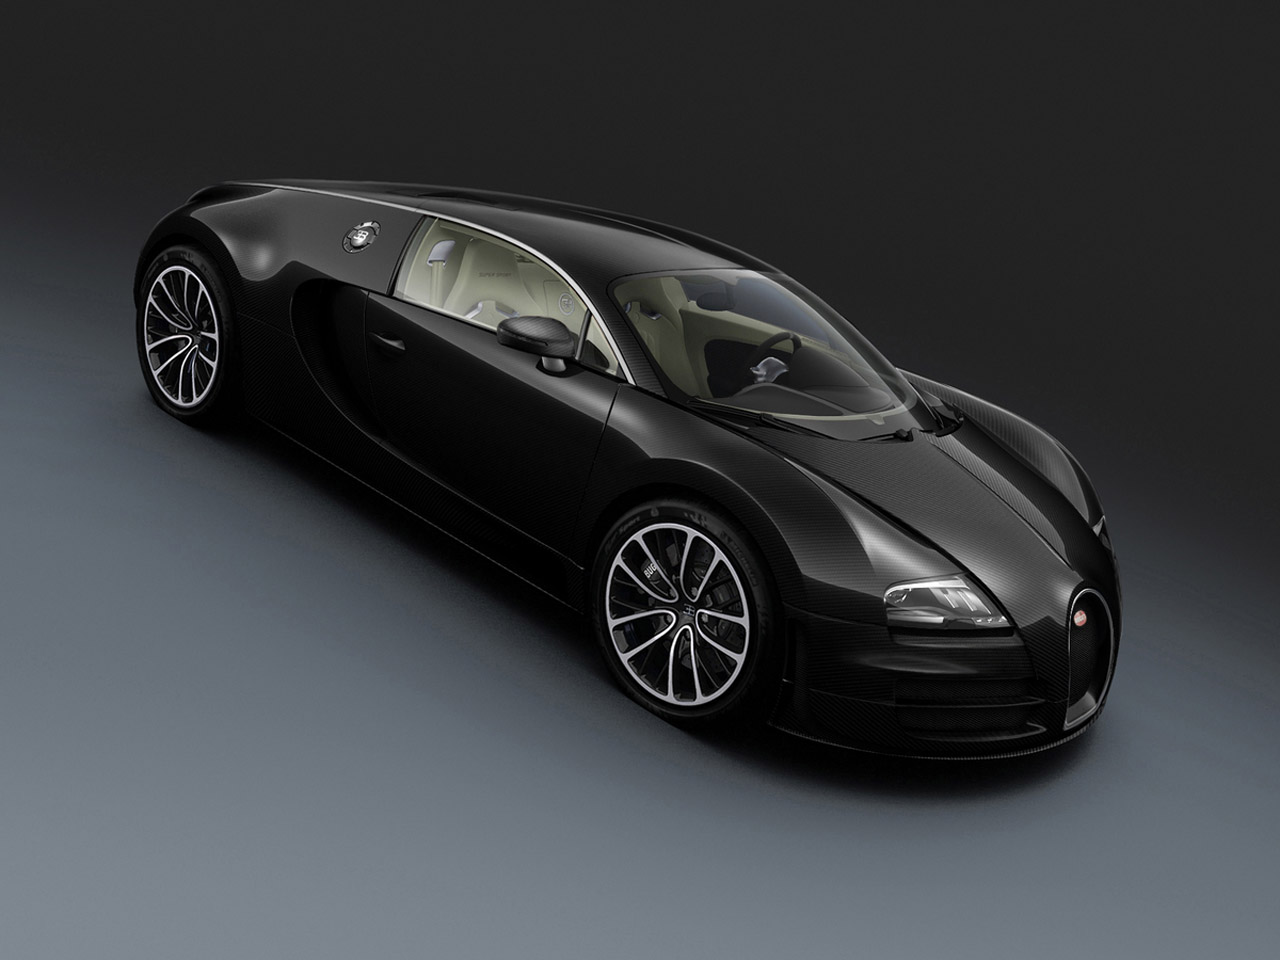 Bugatti Veyron Super Sport Black Carbon, Bugatti Veyron Grand Sport White Matt Blue Carbon